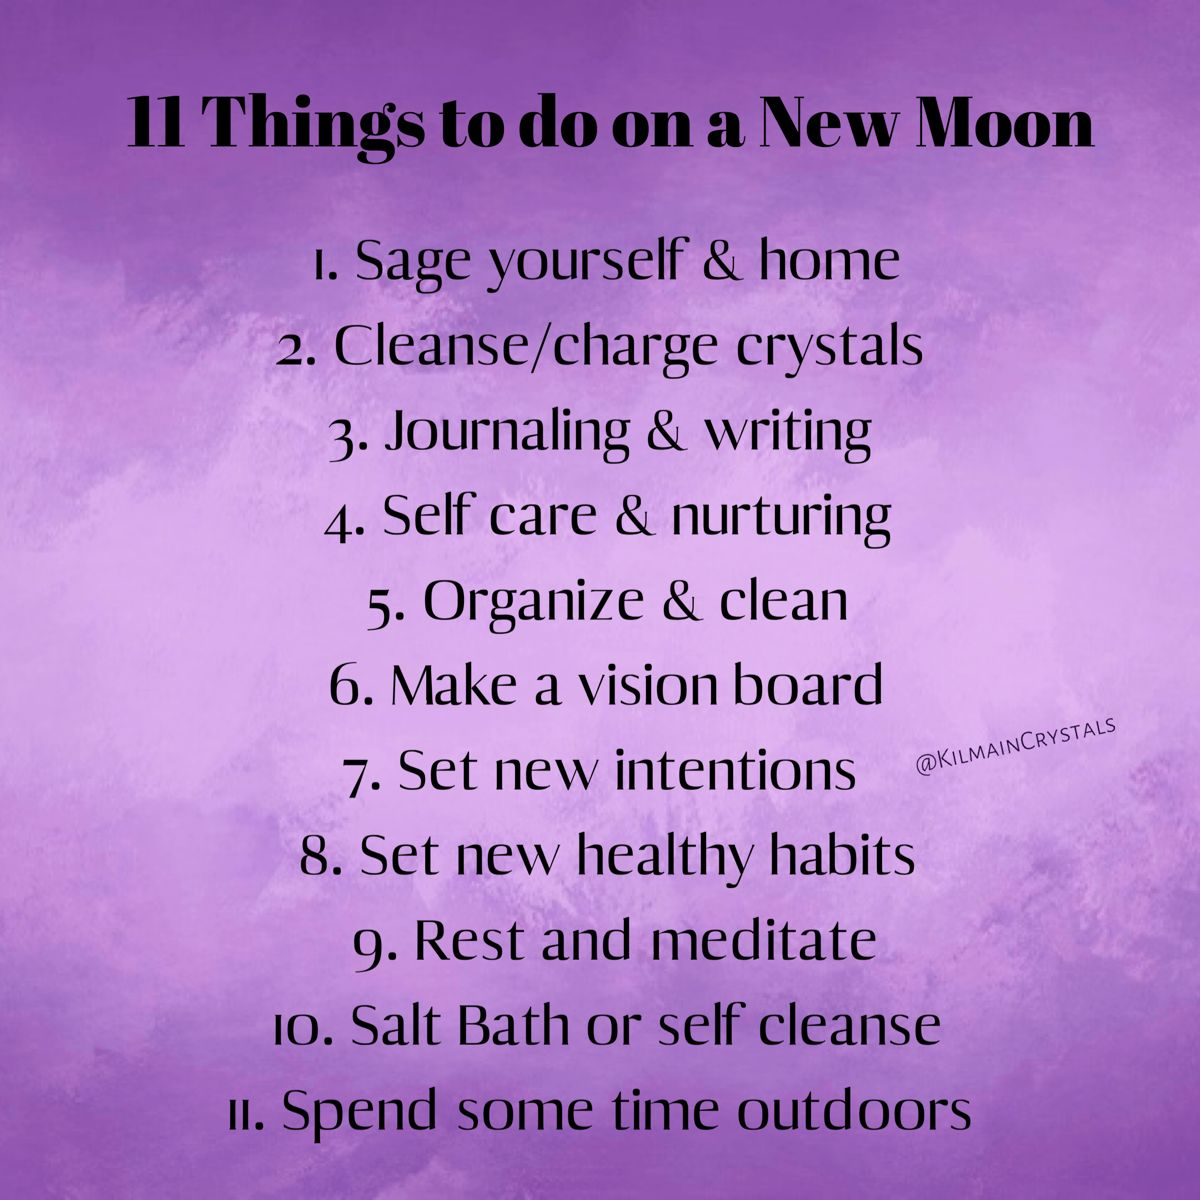 11 Things to do on a New Moon